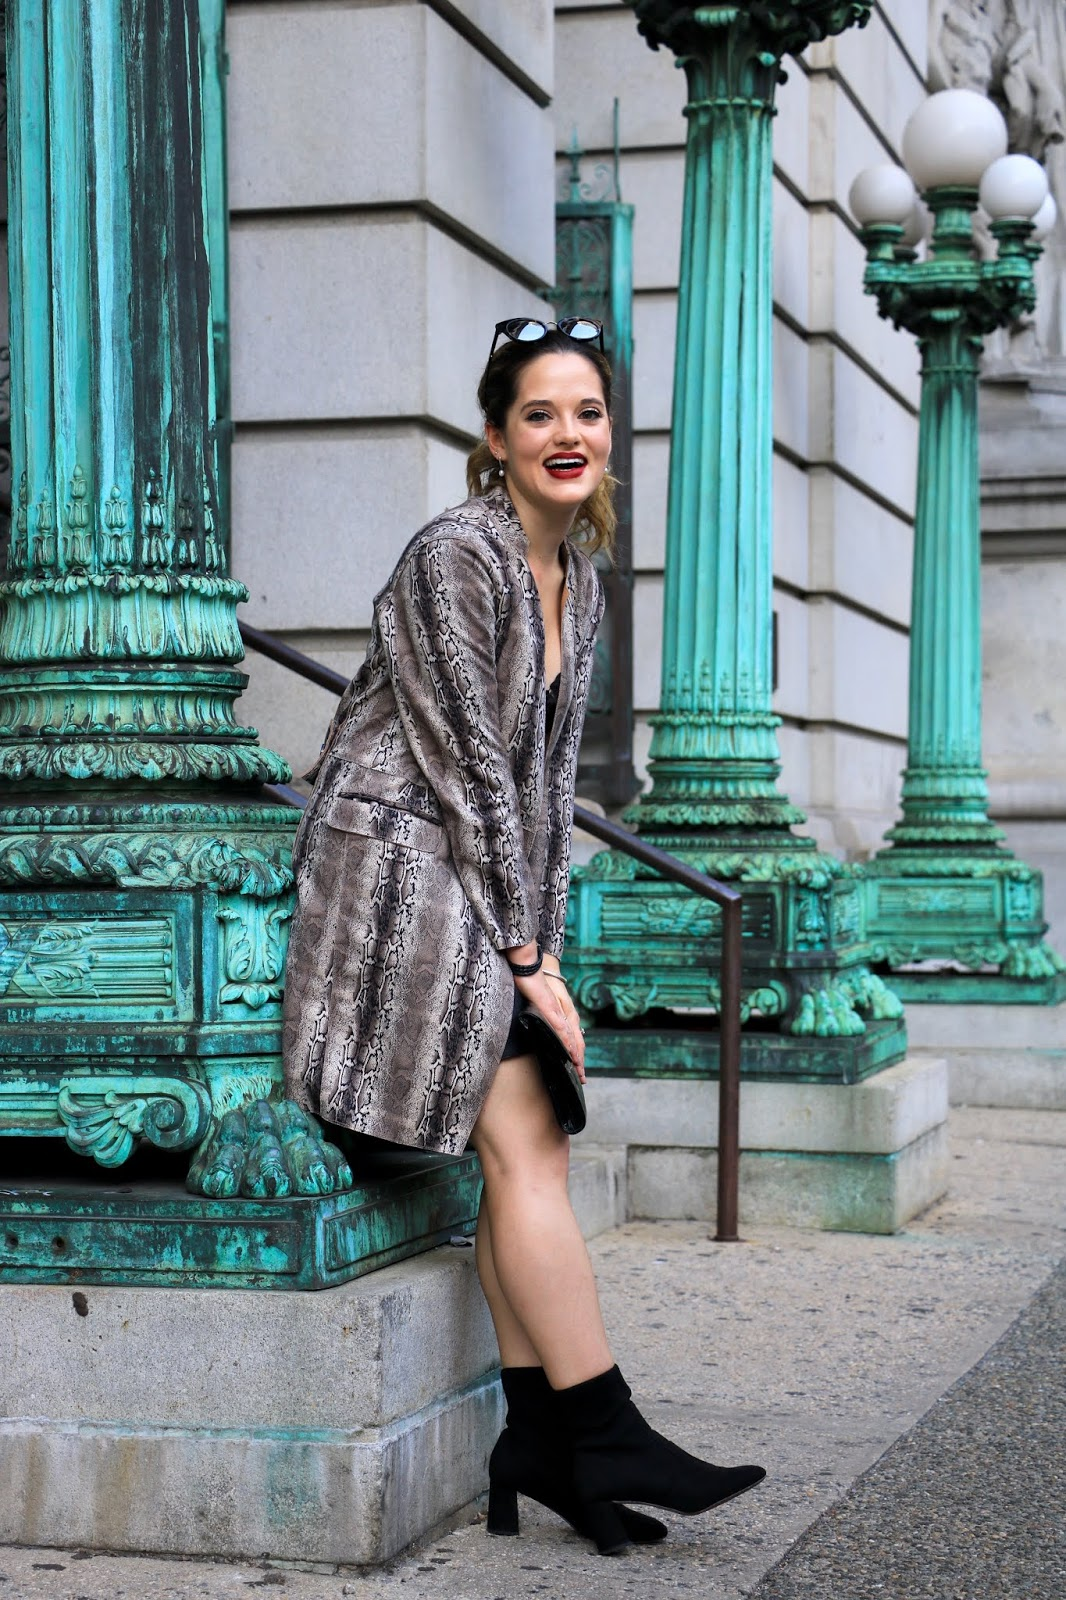 Nyc fashion blogger Kathleen Harper's Financial District photo shoot.